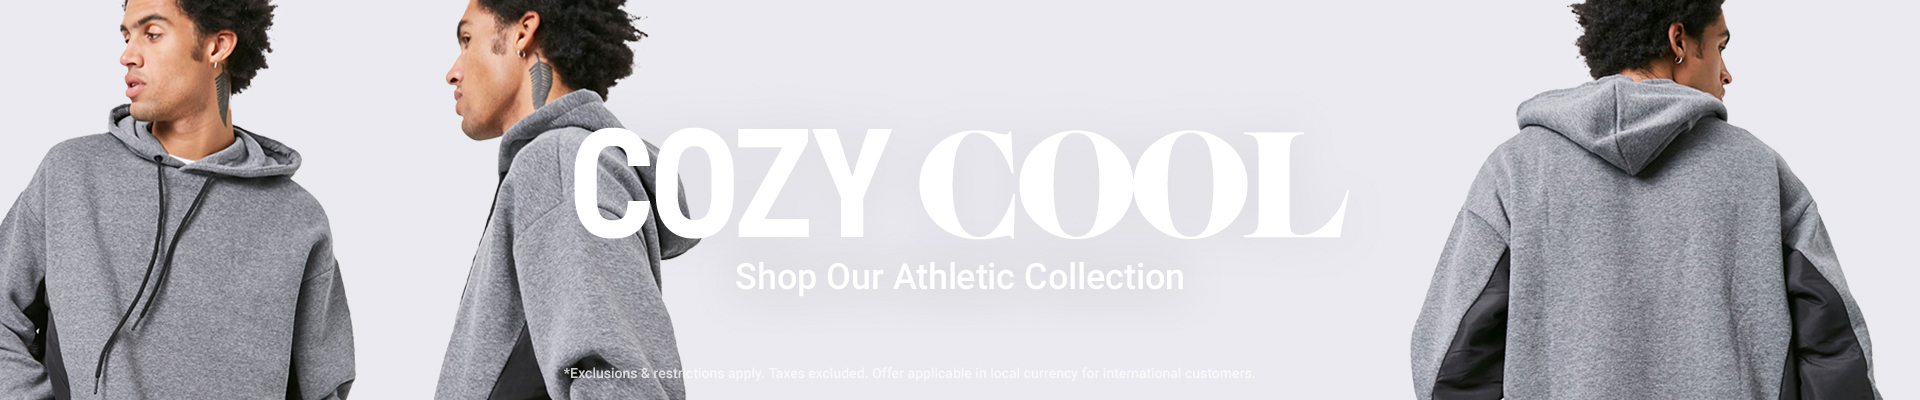 COZY COOL Shop Our Athletic Collection *Exclusions & restrictions apply. Taxes excluded. Offer applicable in local currency for international customers.